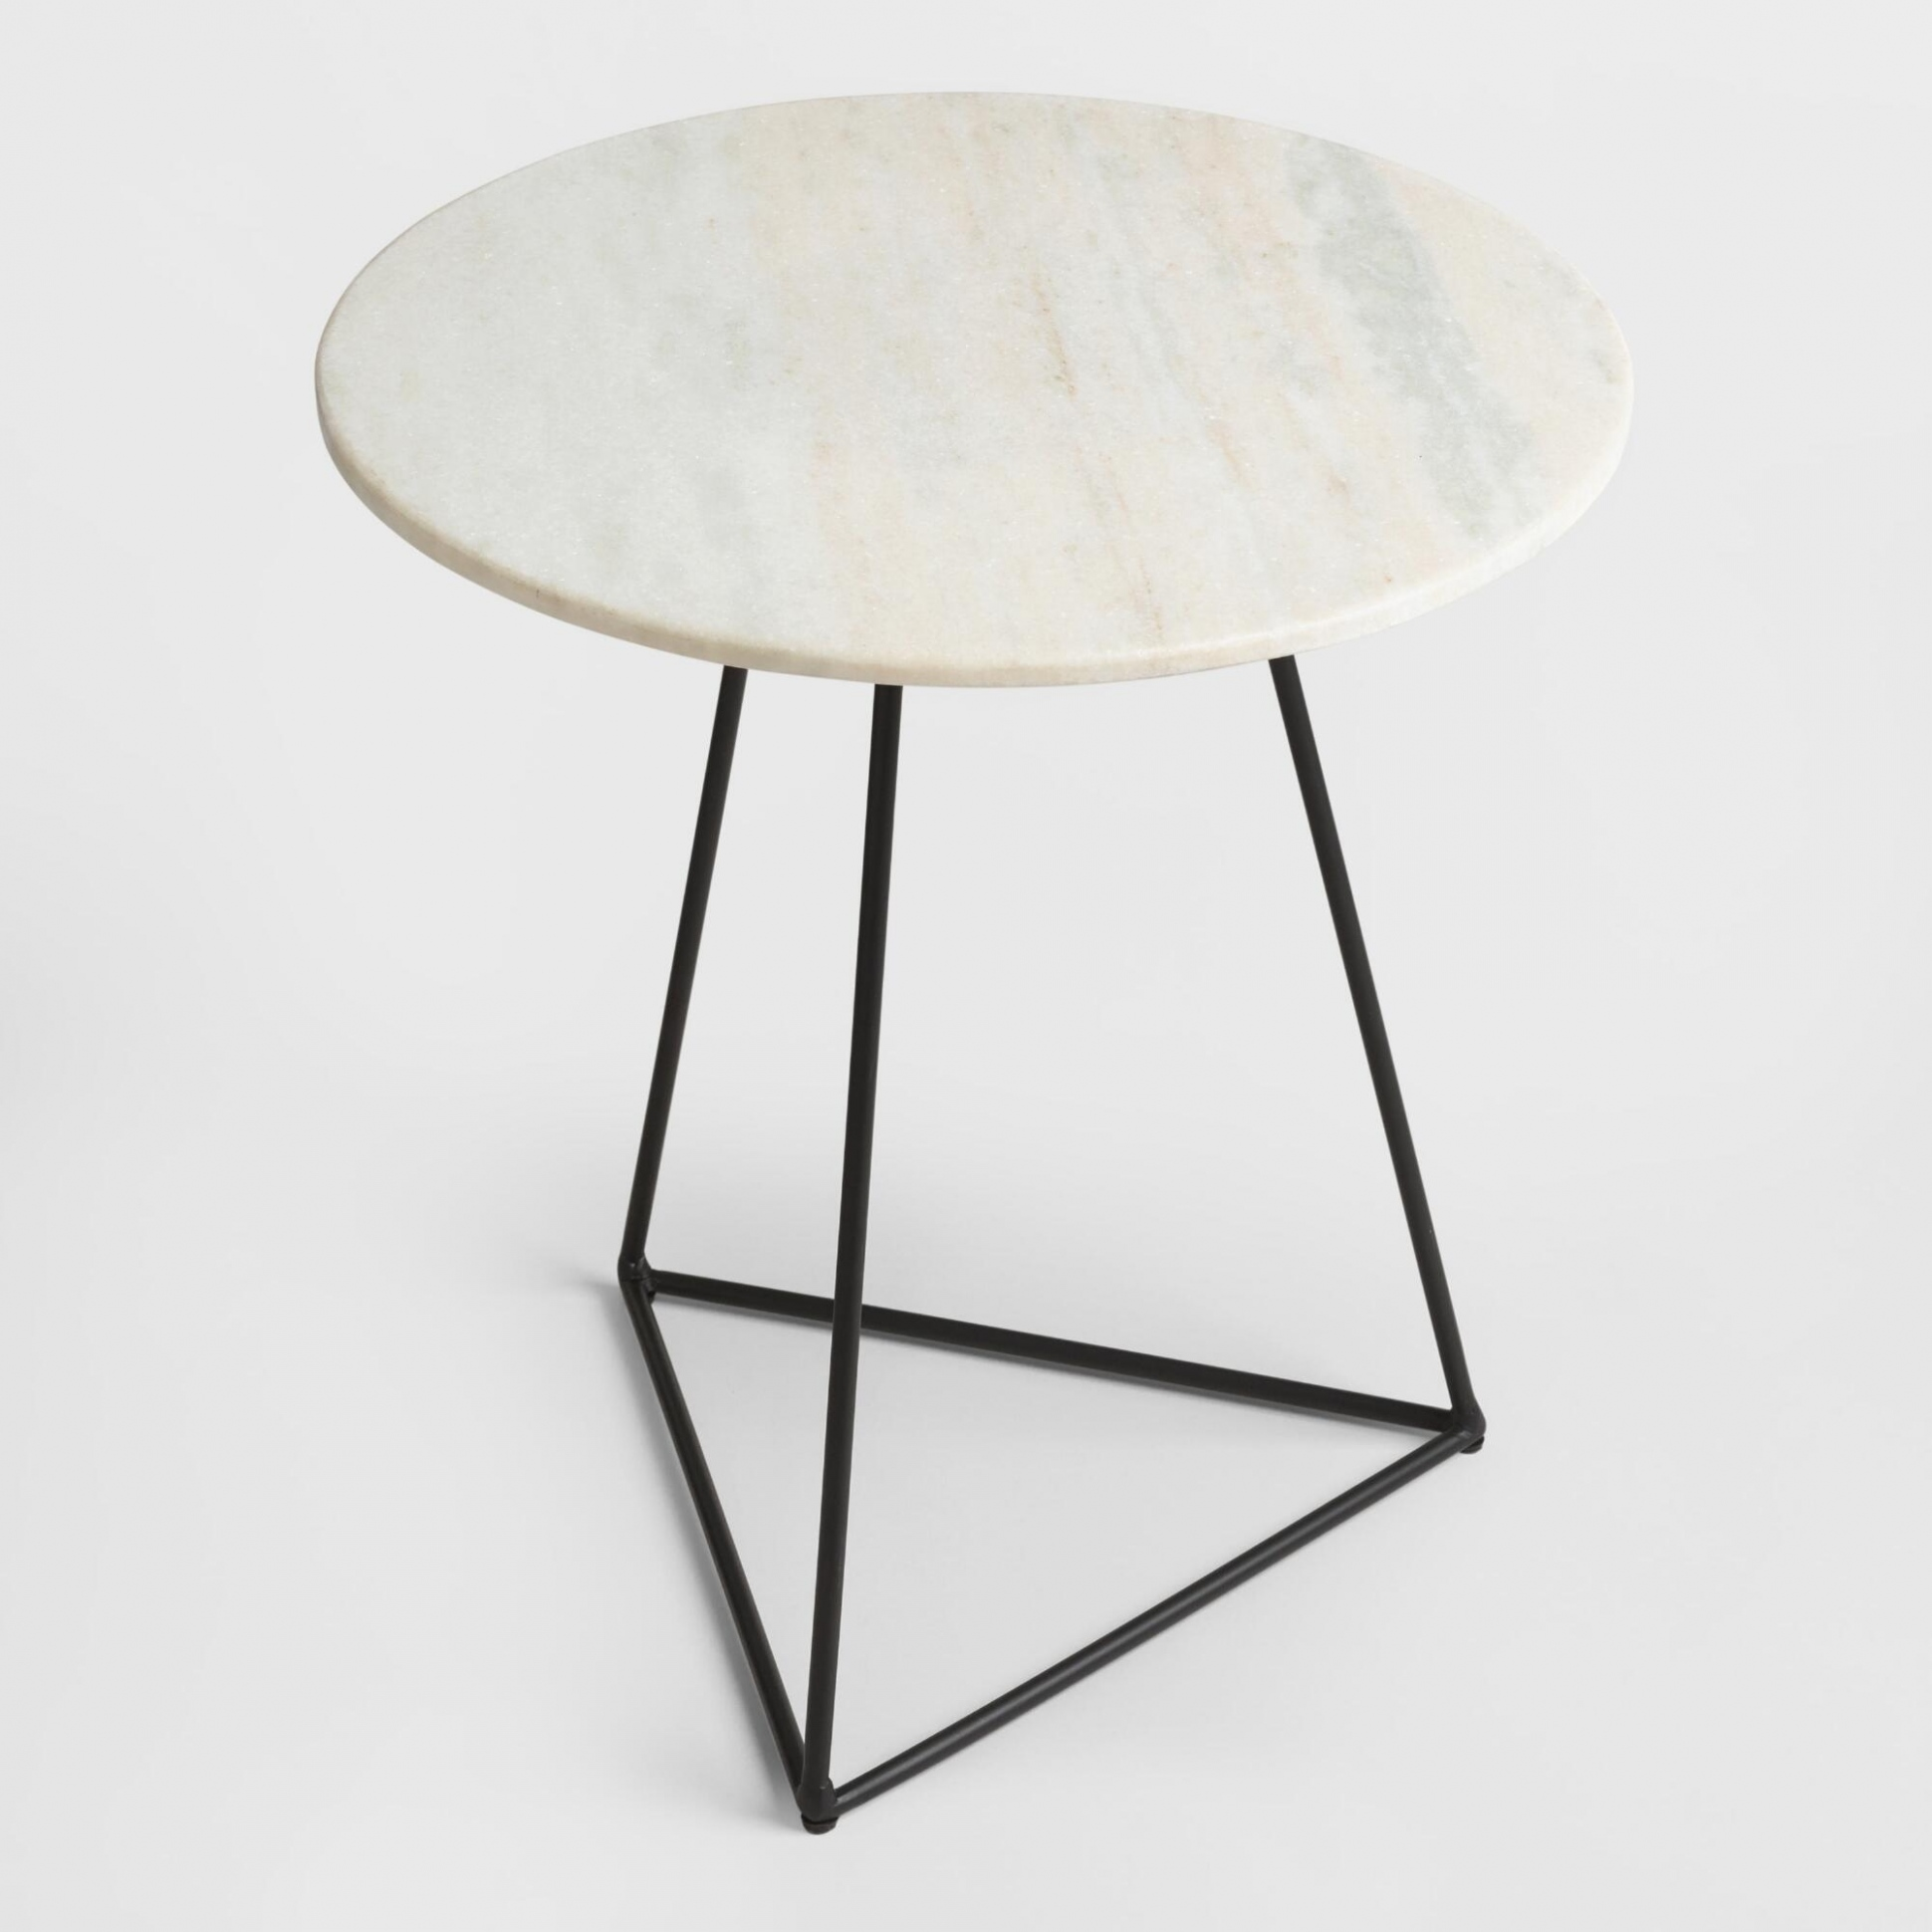 marble end tables rabbssteak house white and metal round accent table edmonton vanora wooden bedside cabinets target mirrored furniture verizon tablet corner wine rack wicker